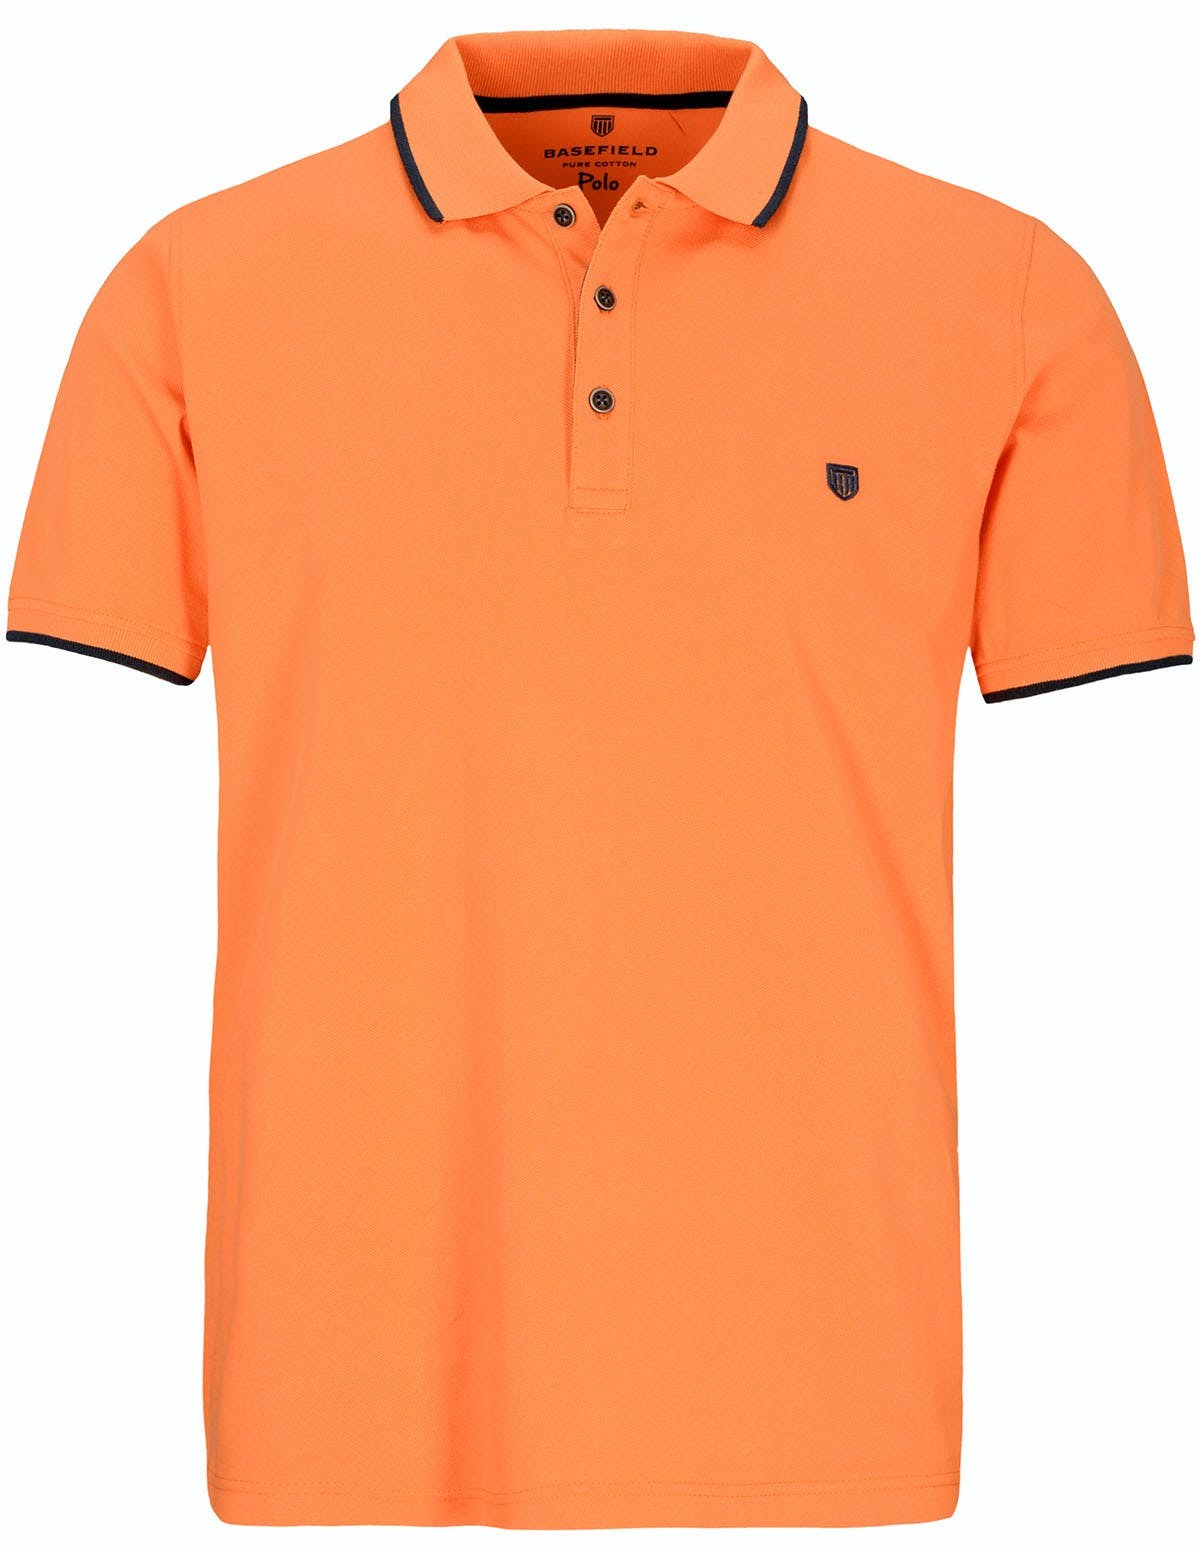 219012970-peach__polo-shirt__all